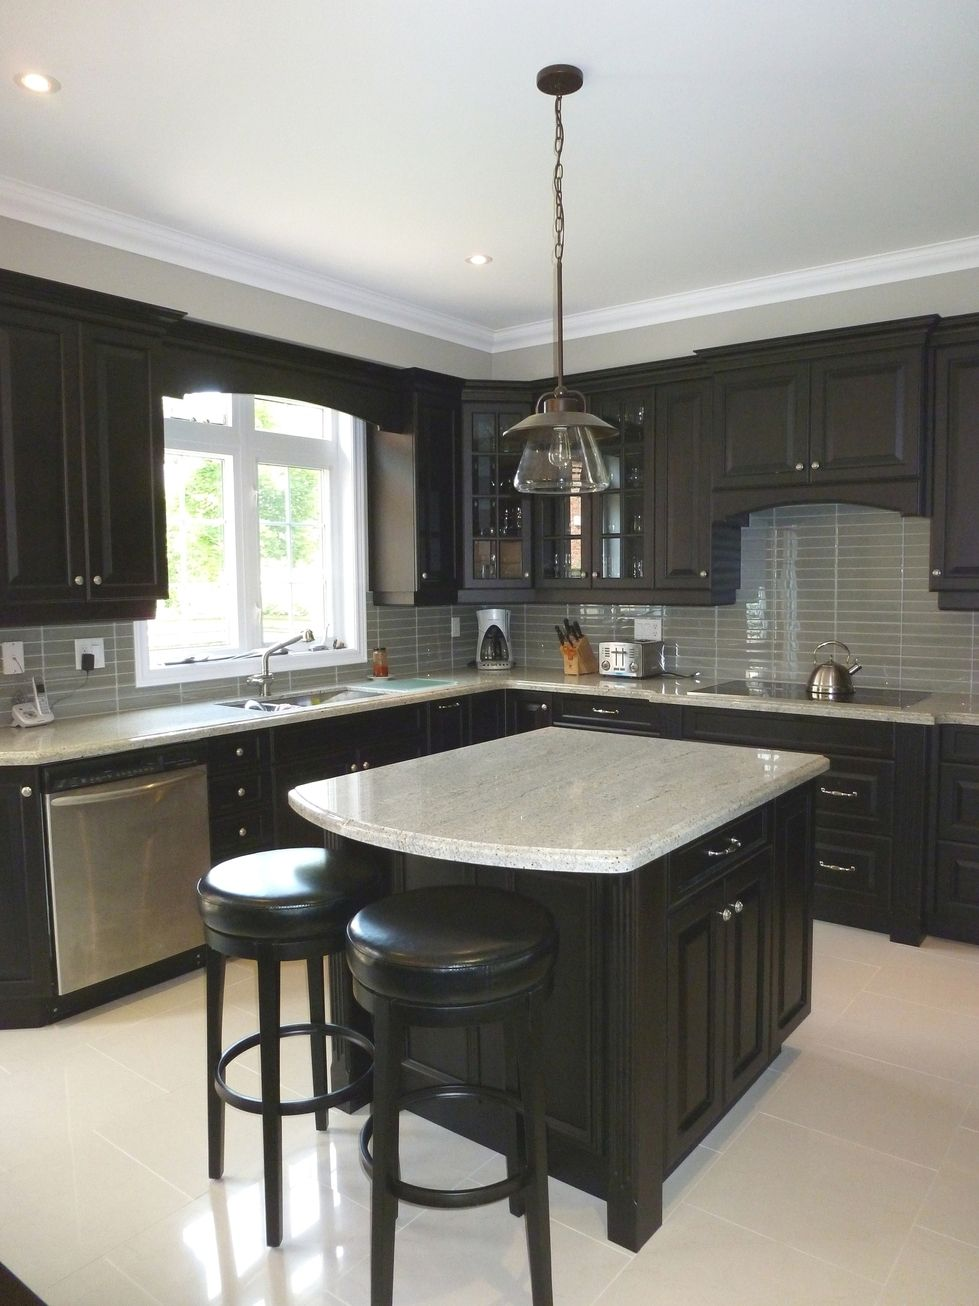 Affordable Sears Kitchen Cabinets #16685 | Kitchen